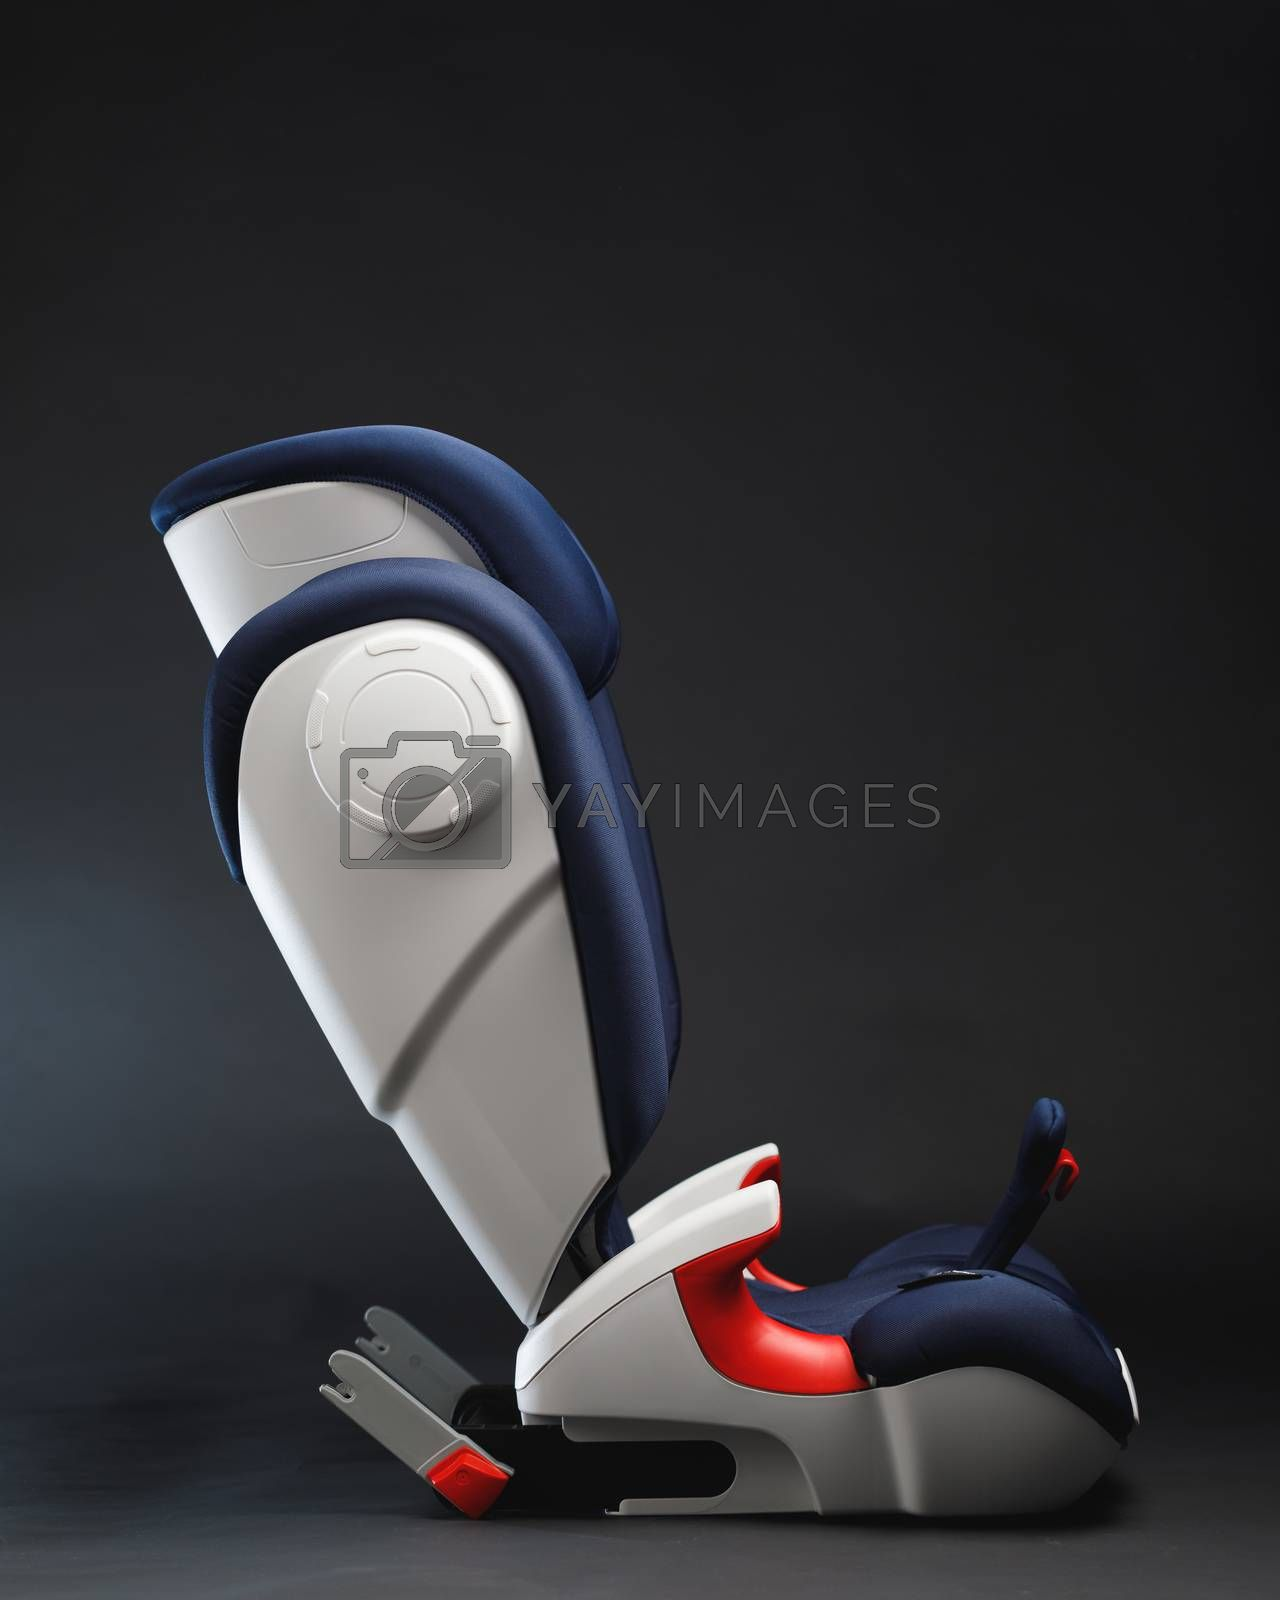 toddler car seat, side view, gray background